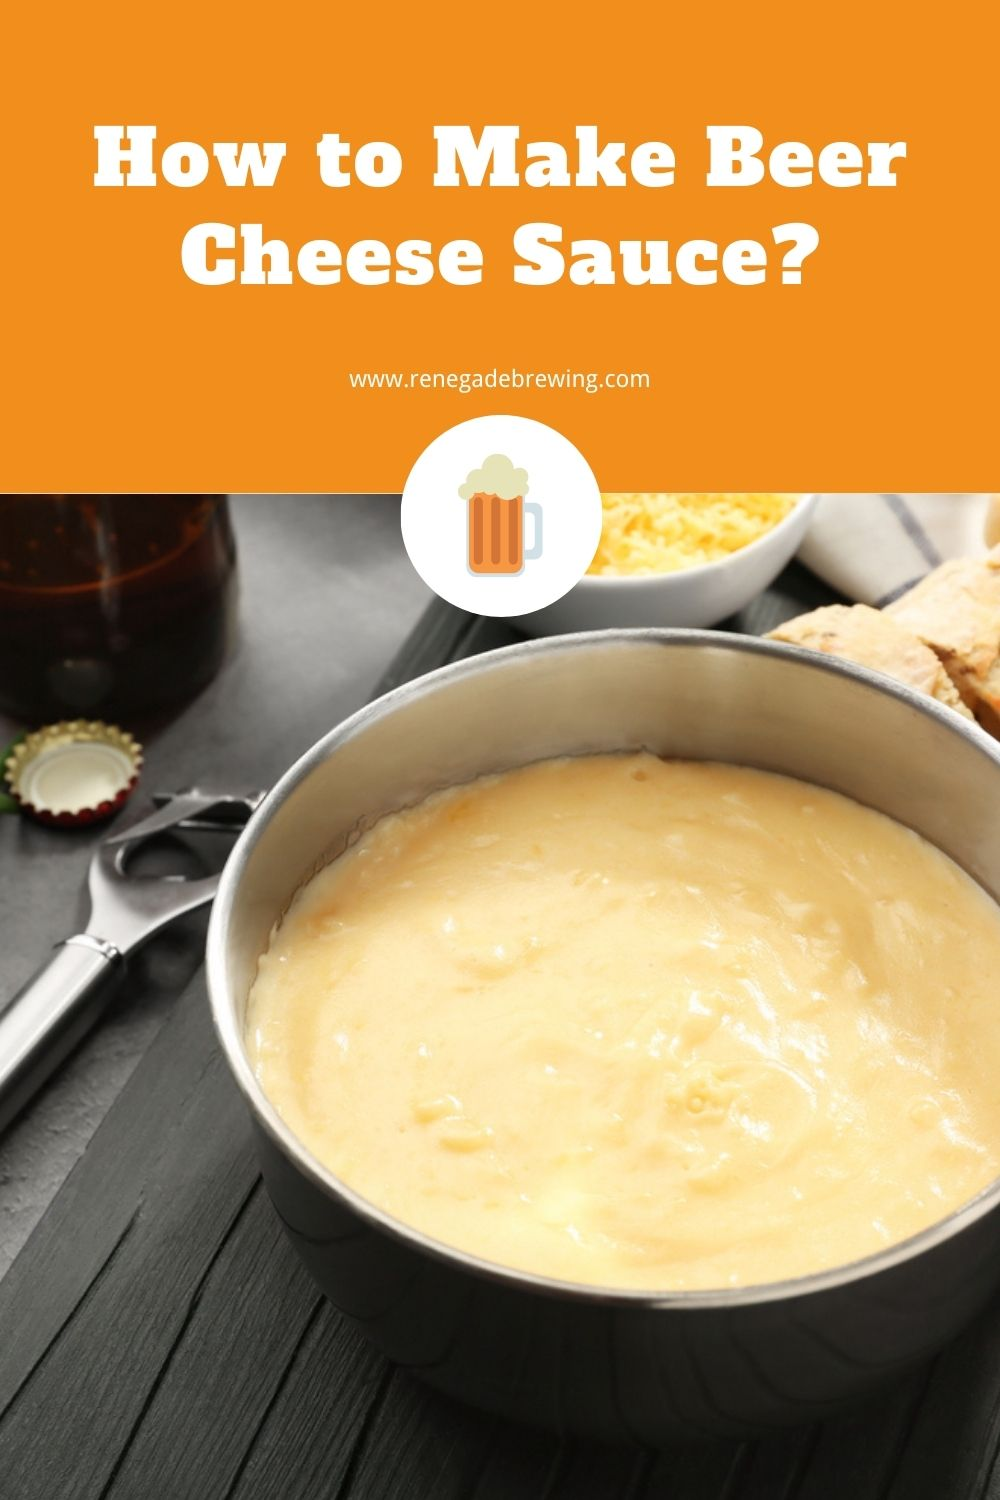 How to Make Beer Cheese Sauce 2